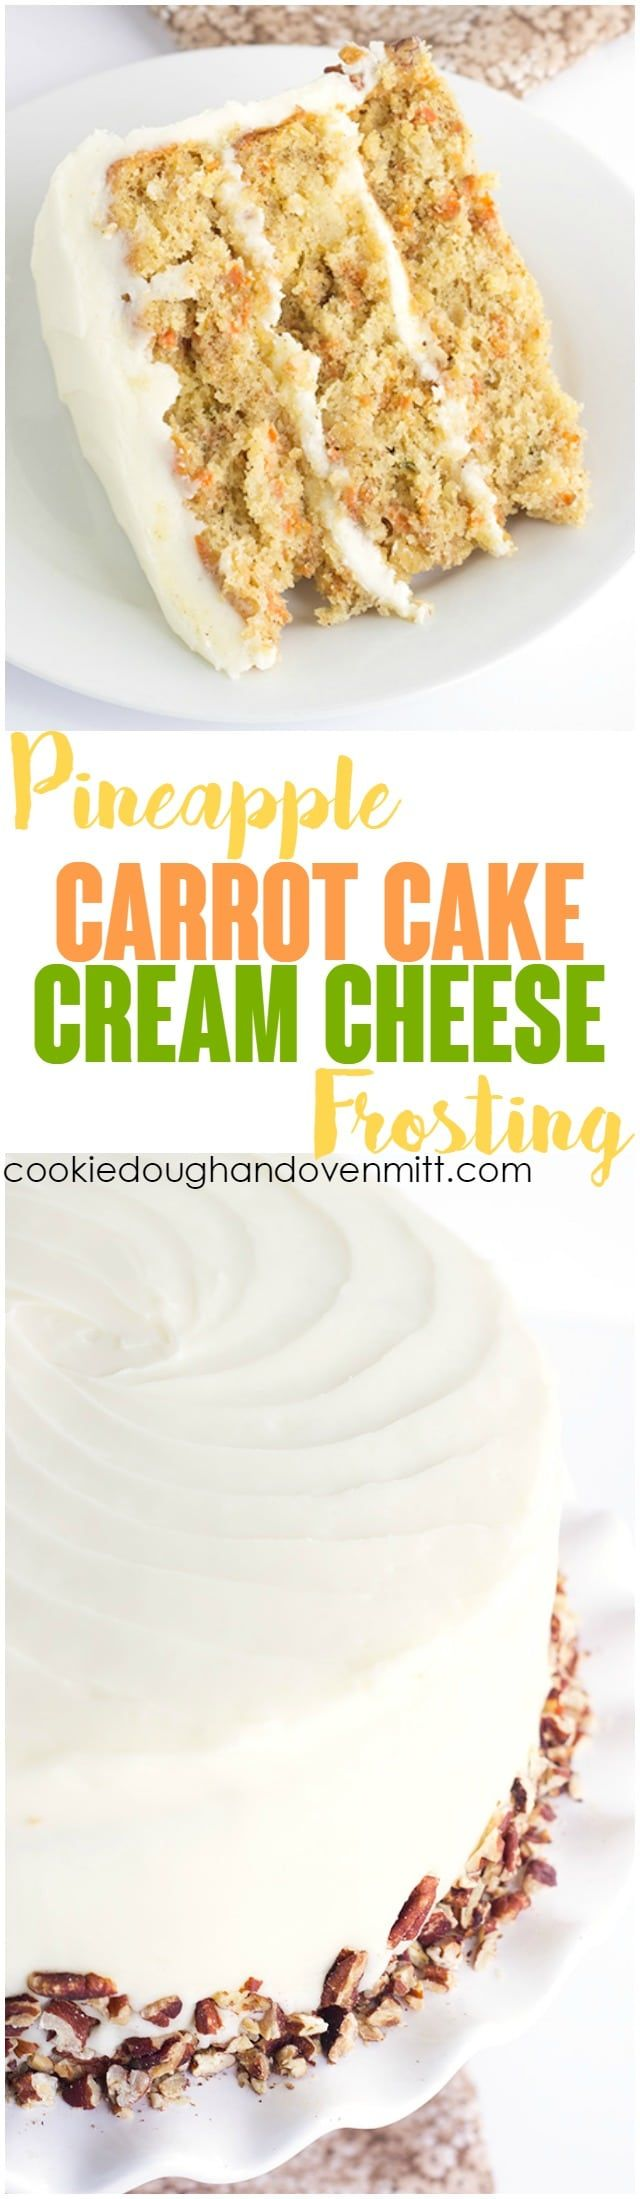 Pineapple Carrot Cake with Cream Cheese Frosting - the perfect Easter cake! It's full of crushed pineapple, shredded carrots, and cinnamon. It's slathered with a cream cheese frosting infused with pineapple juice and garnished with toasted pecans. via @mmmirnanda